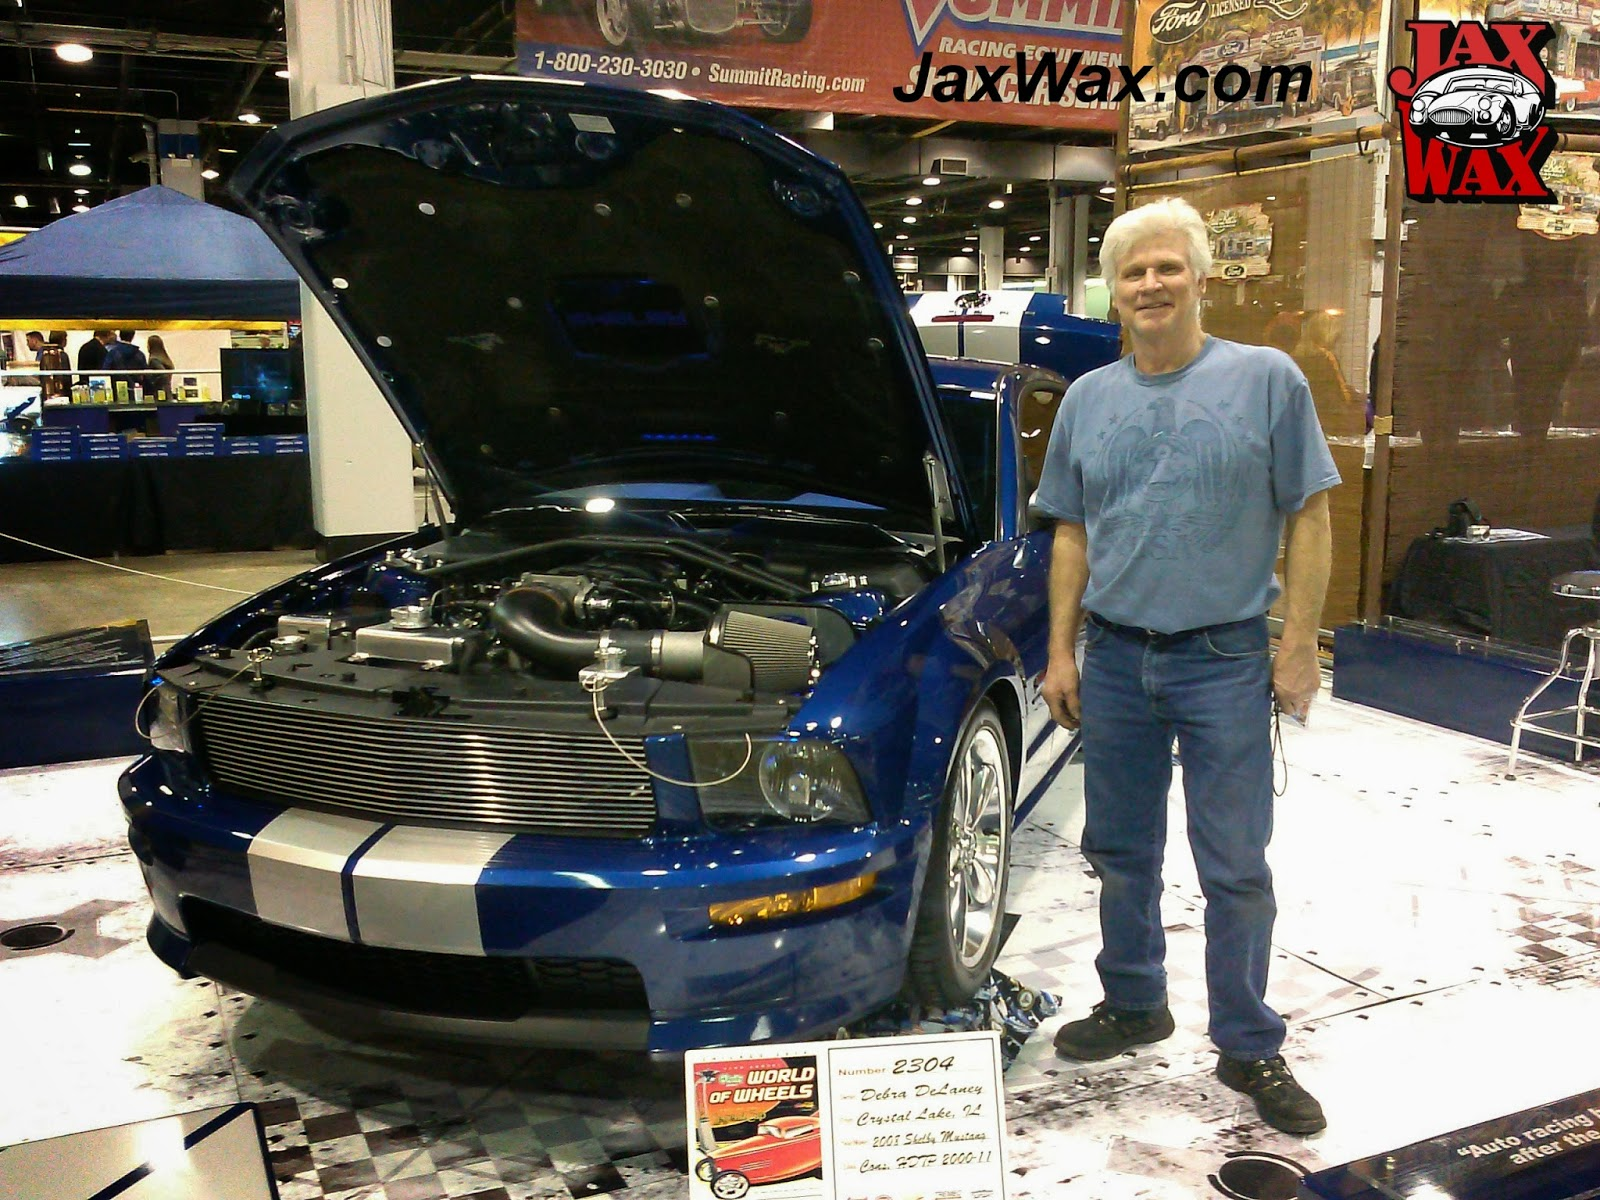 2008 Ford Mustang Shelby GT Jax Wax Customer Chicago World of Wheels